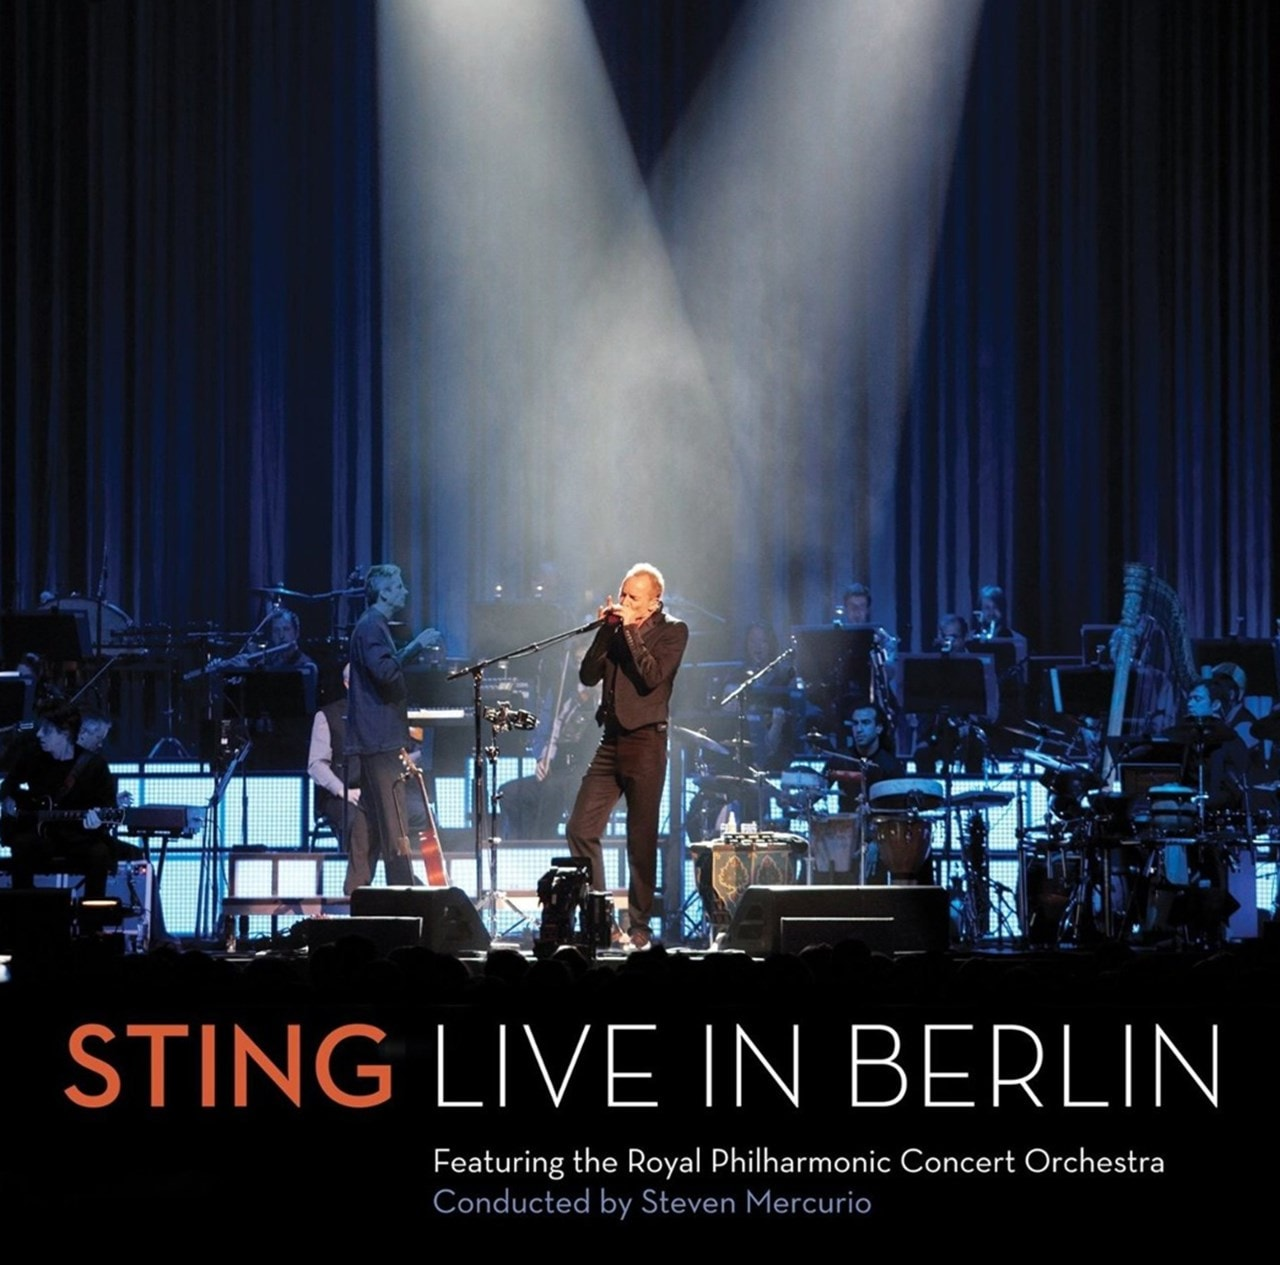 Live in Berlin: Featuring the Royal Philharmonic Orchestra - 1